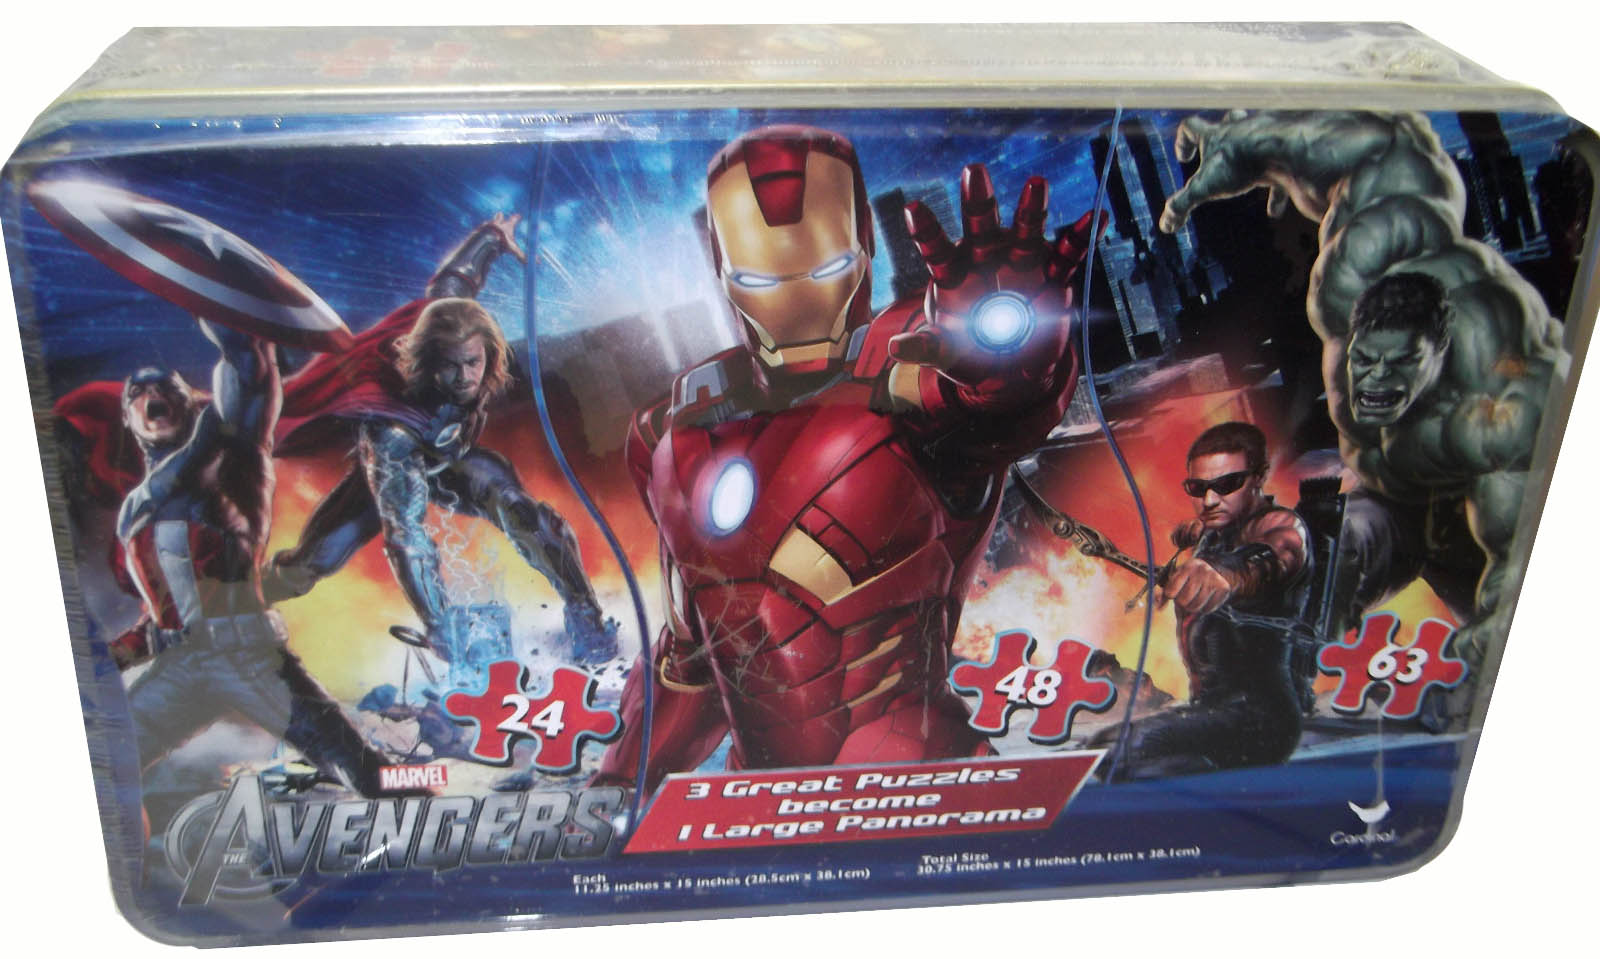 3 in 1 Panoramic - The Avengers Cartoons Jigsaw Puzzle